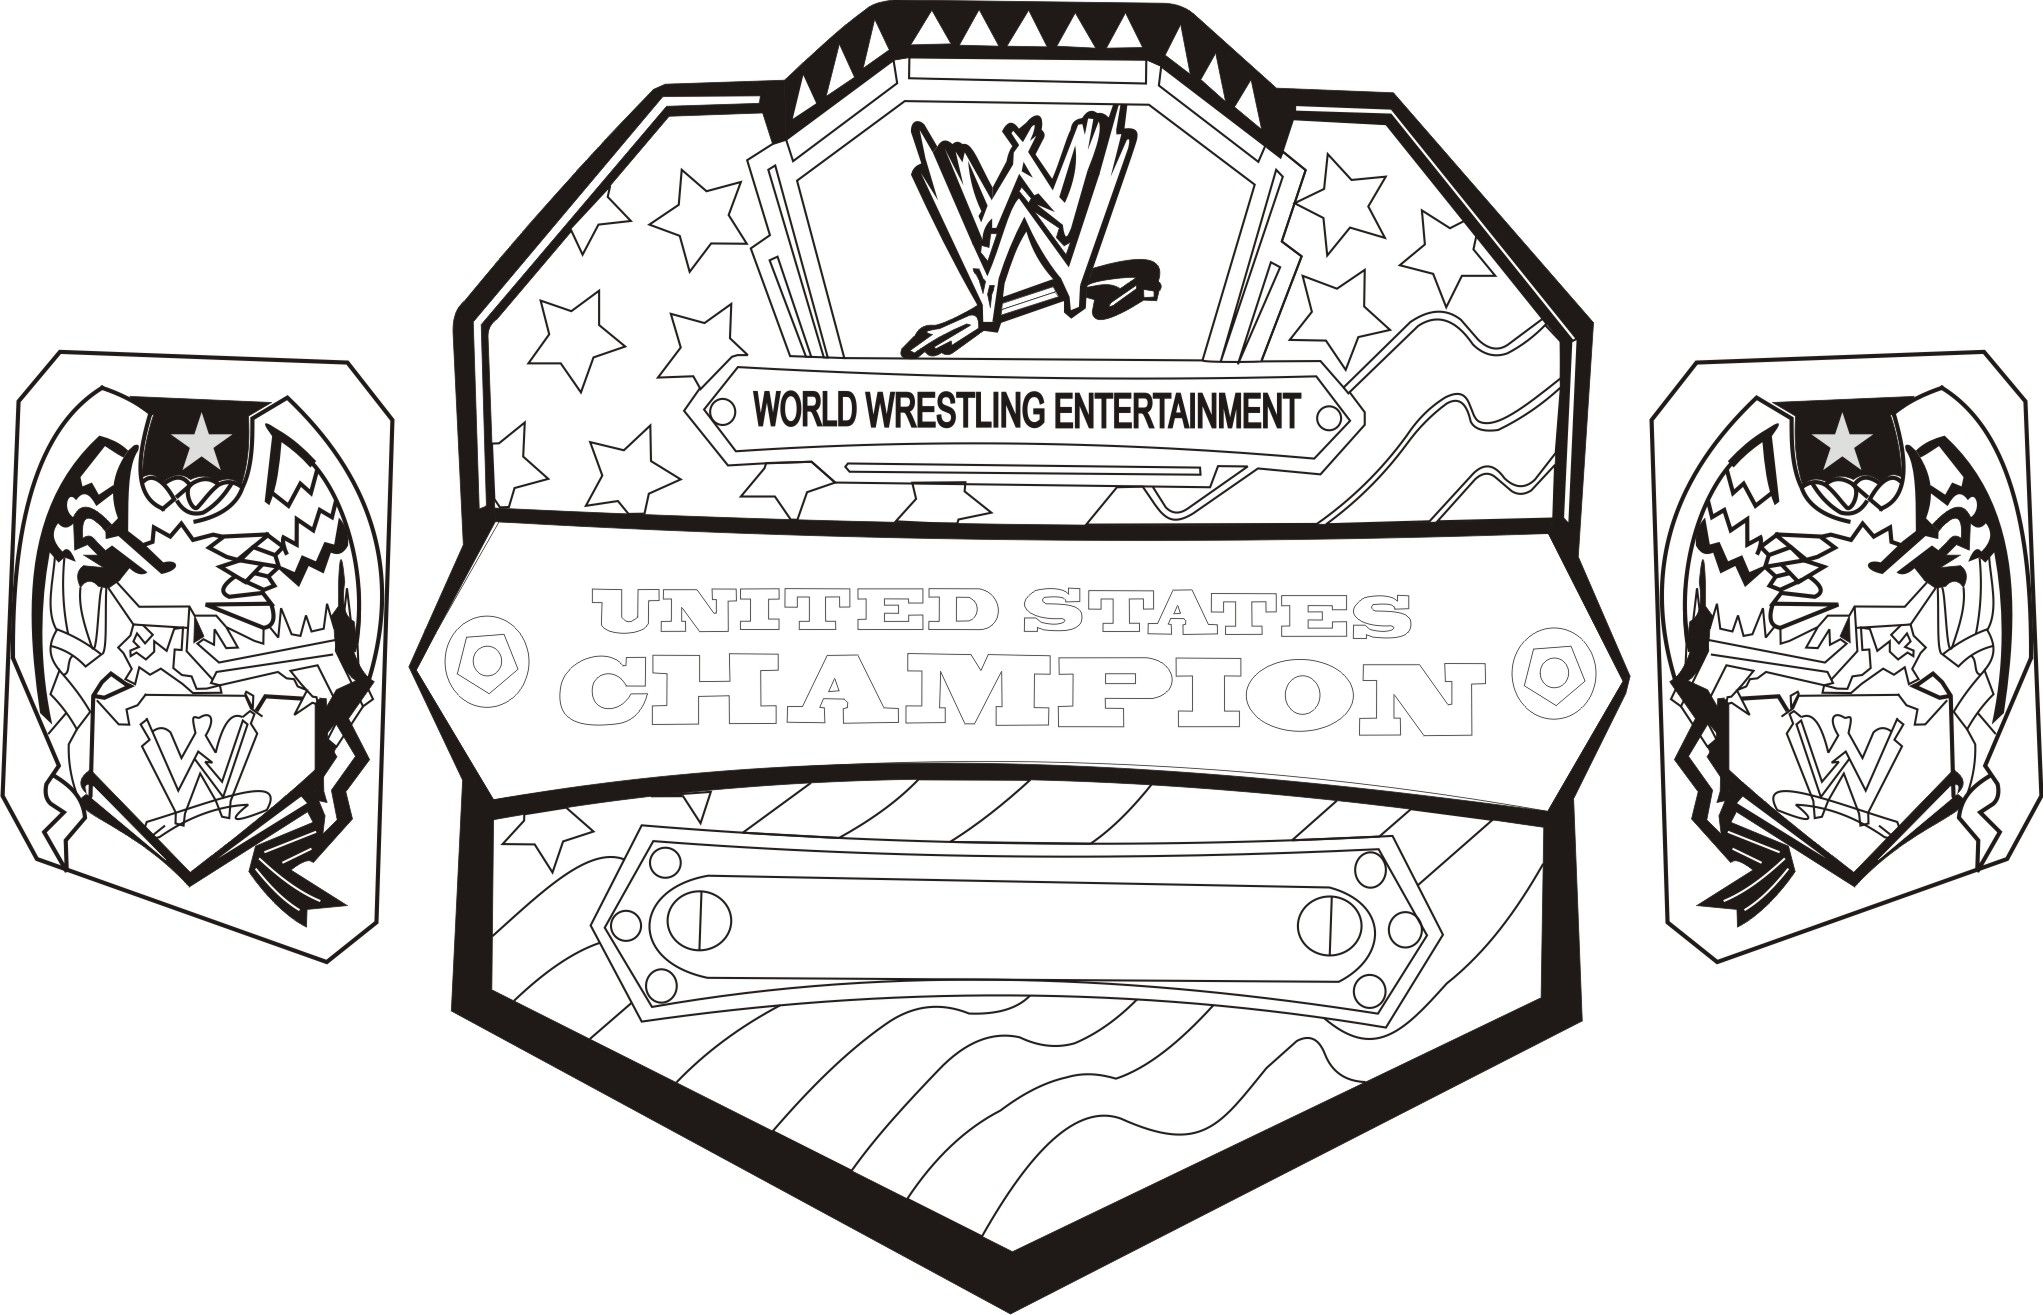 Wwe coloring pages to print - Wwe Coloring Pages And Book Uniquecoloringpages